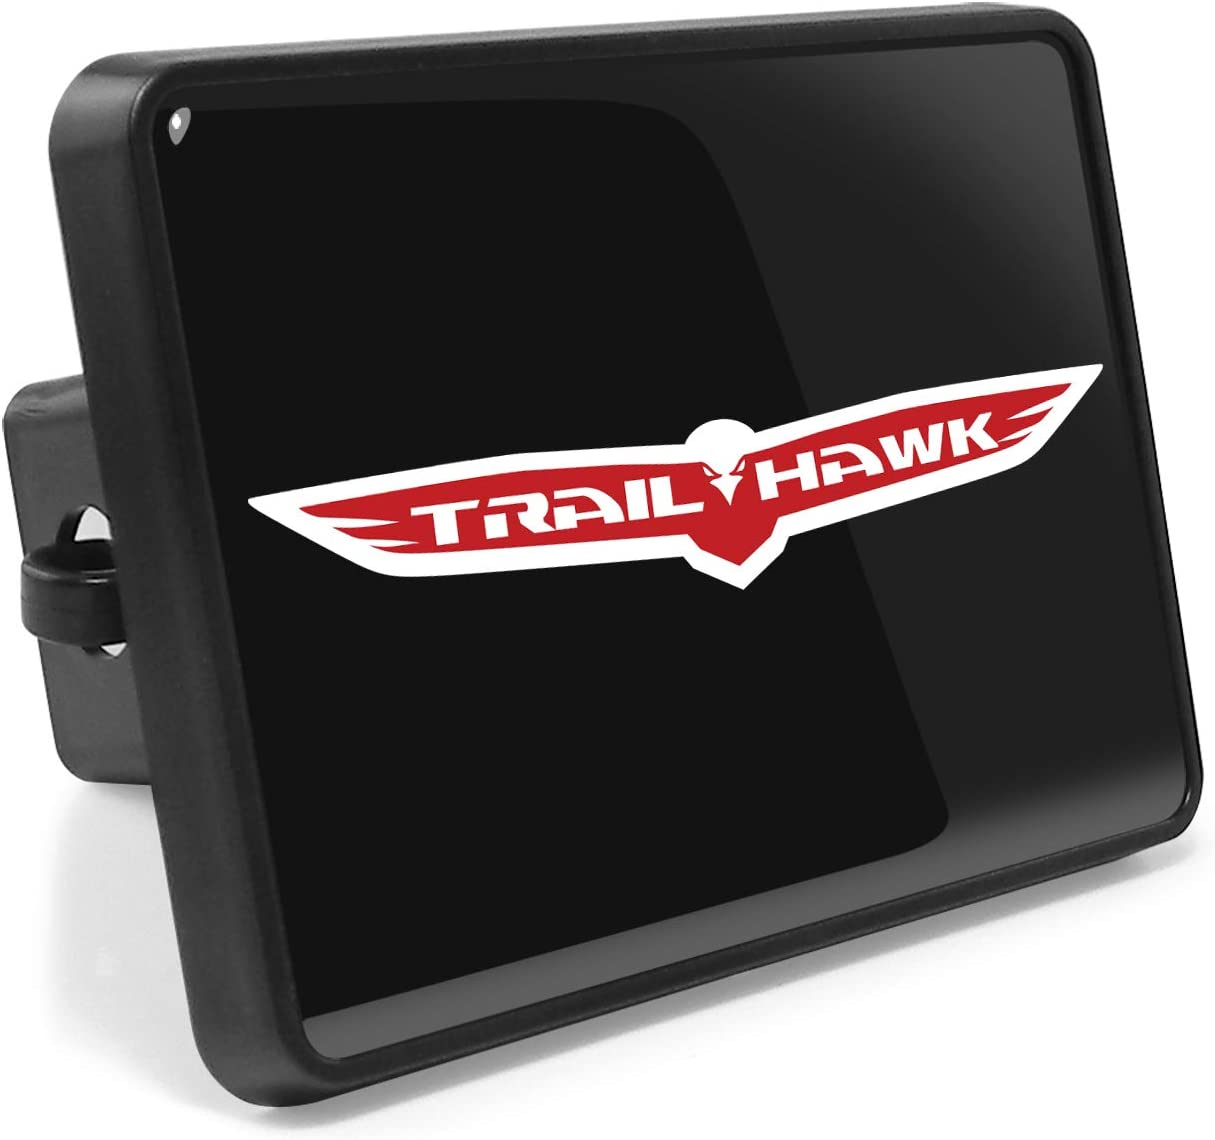 iPick Image for Jeep Trailhawk UV Graphic Black ABS Plastic Tow Hitch Cover